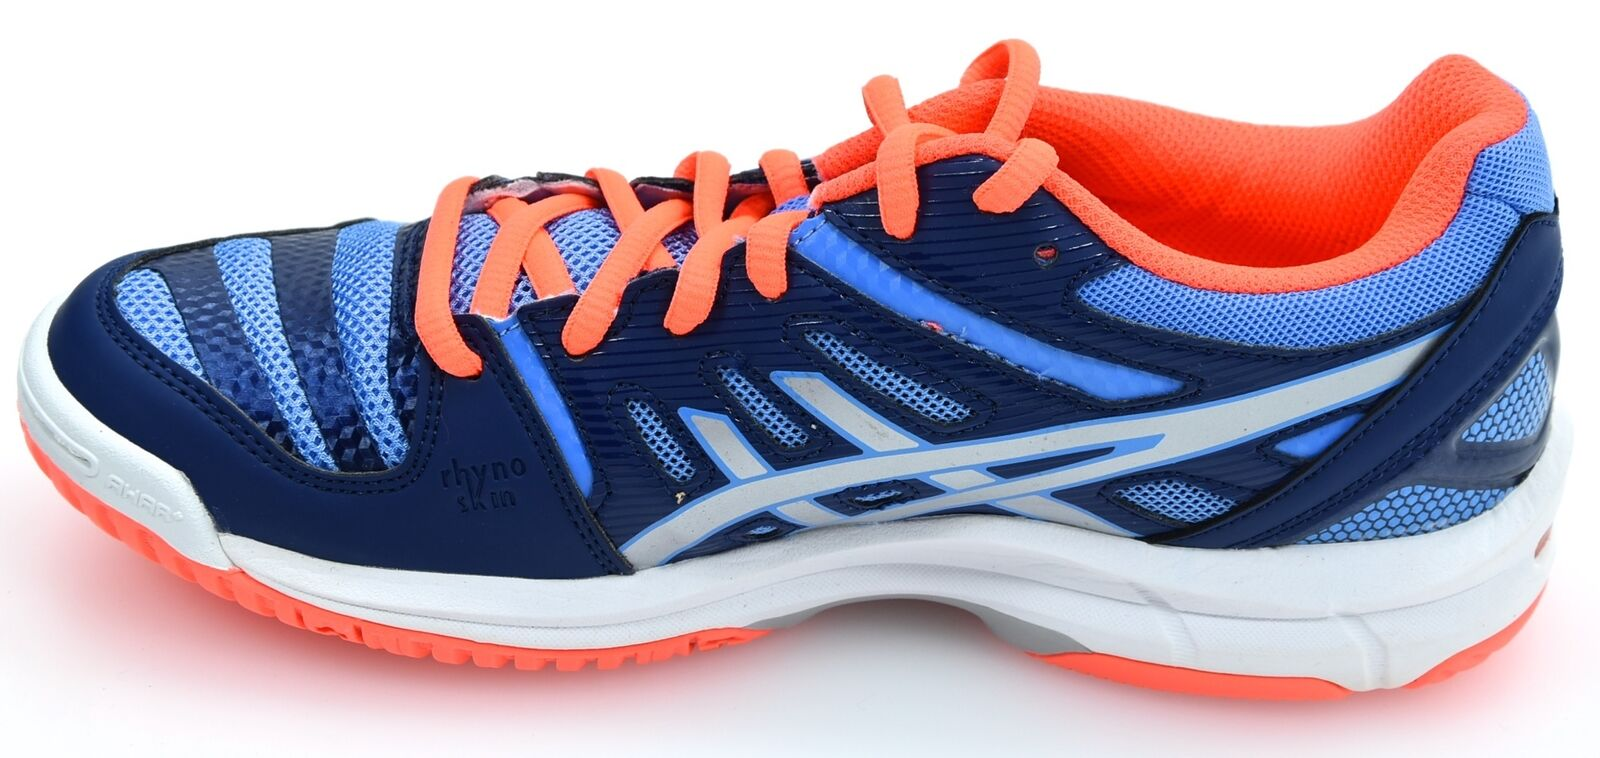 ASICS Damenschuhe SNEAKER SPORTS RUNNING SNEAKER Damenschuhe Schuhe SYNTHETIC CODE B454N GEL-BEYOND 4 2666c9